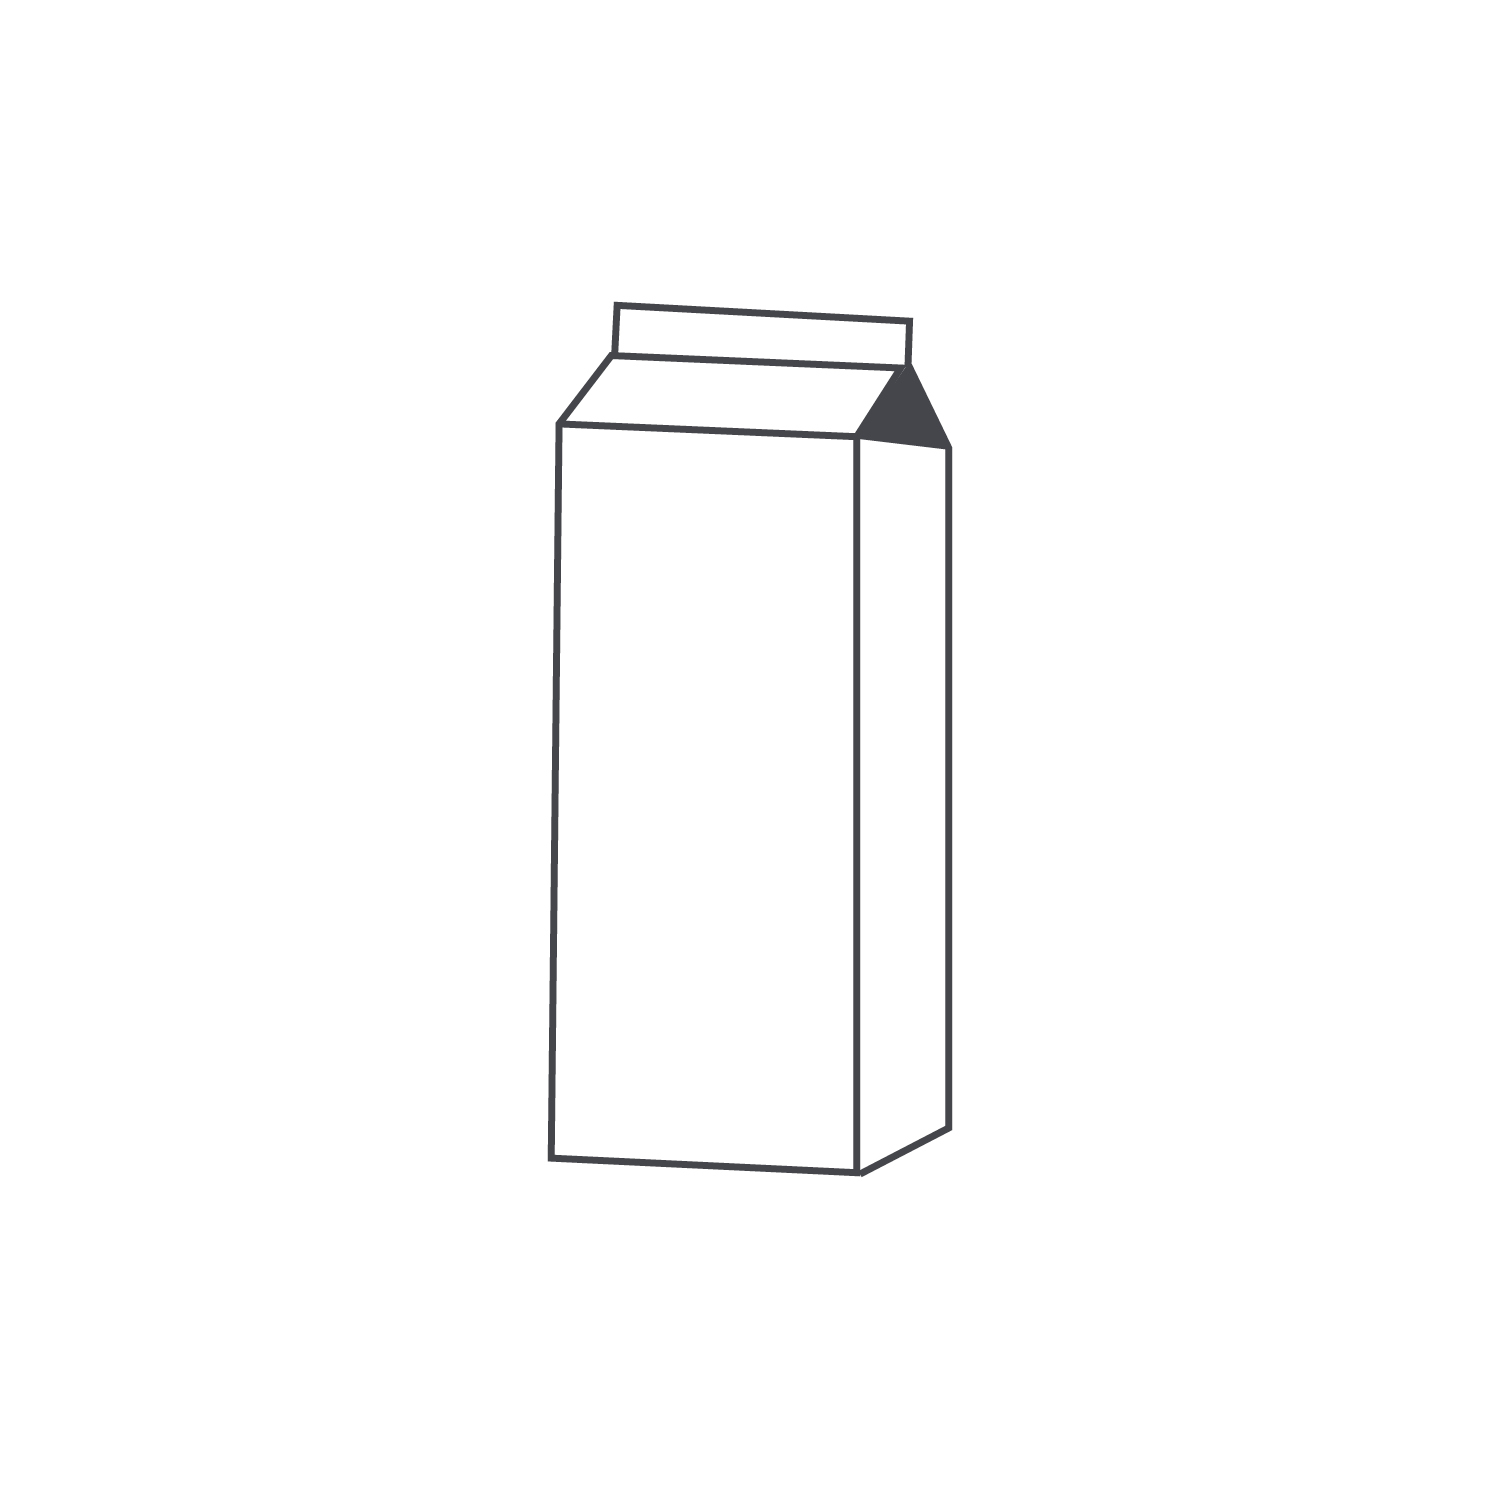 Dairy-Icon91.jpg